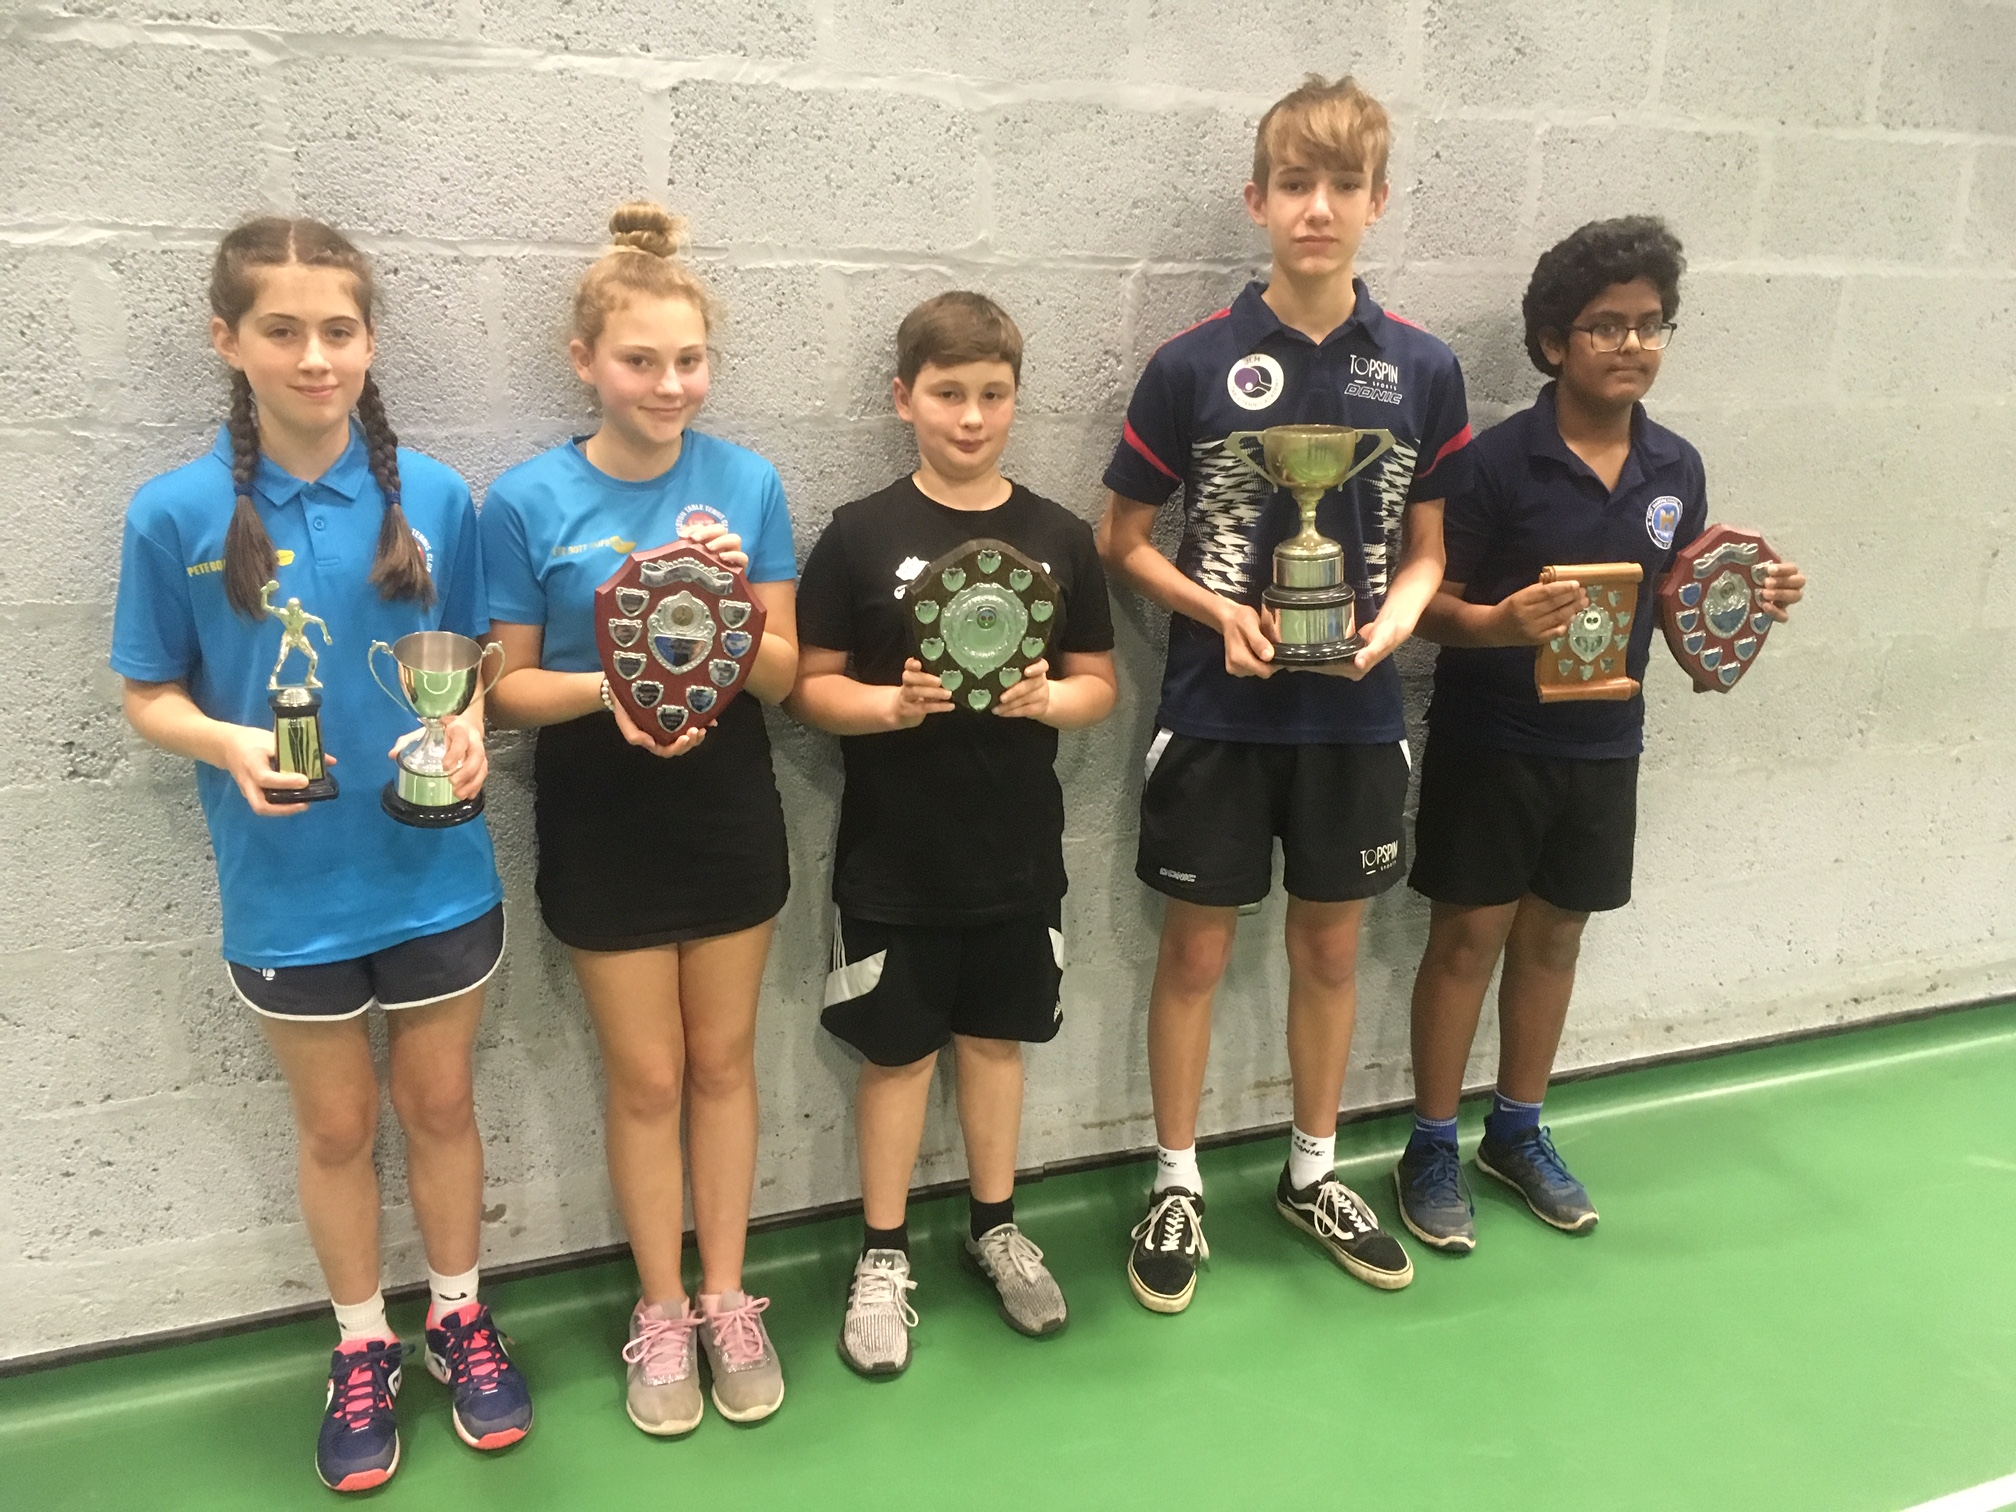 Beth Pye, Anna Cole, Harvey Gough, Alex Emms and Missaka Heenatigala at the junior, cadet and novice Championships. Picture: JOHN MCKAY